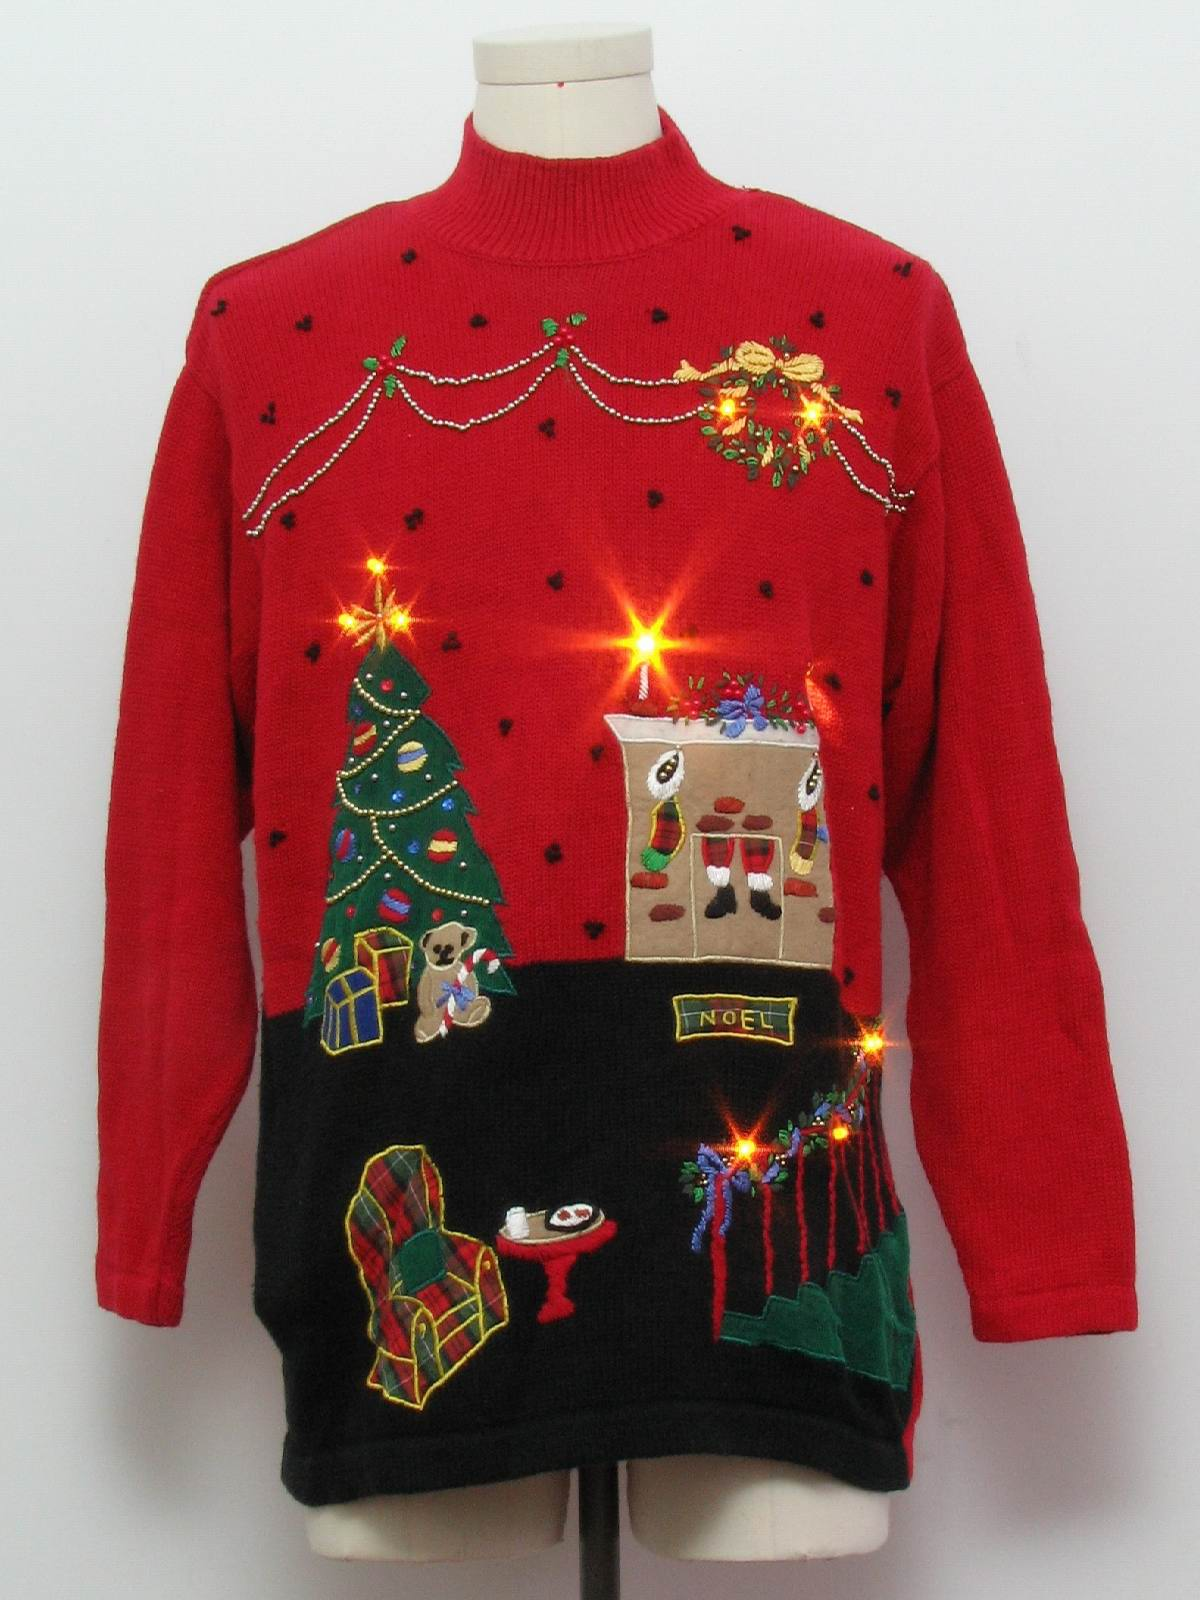 Amber Lightup Ugly Christmas Sweater Victoria Jones Unisex Red Background Cotton Ramie Blend